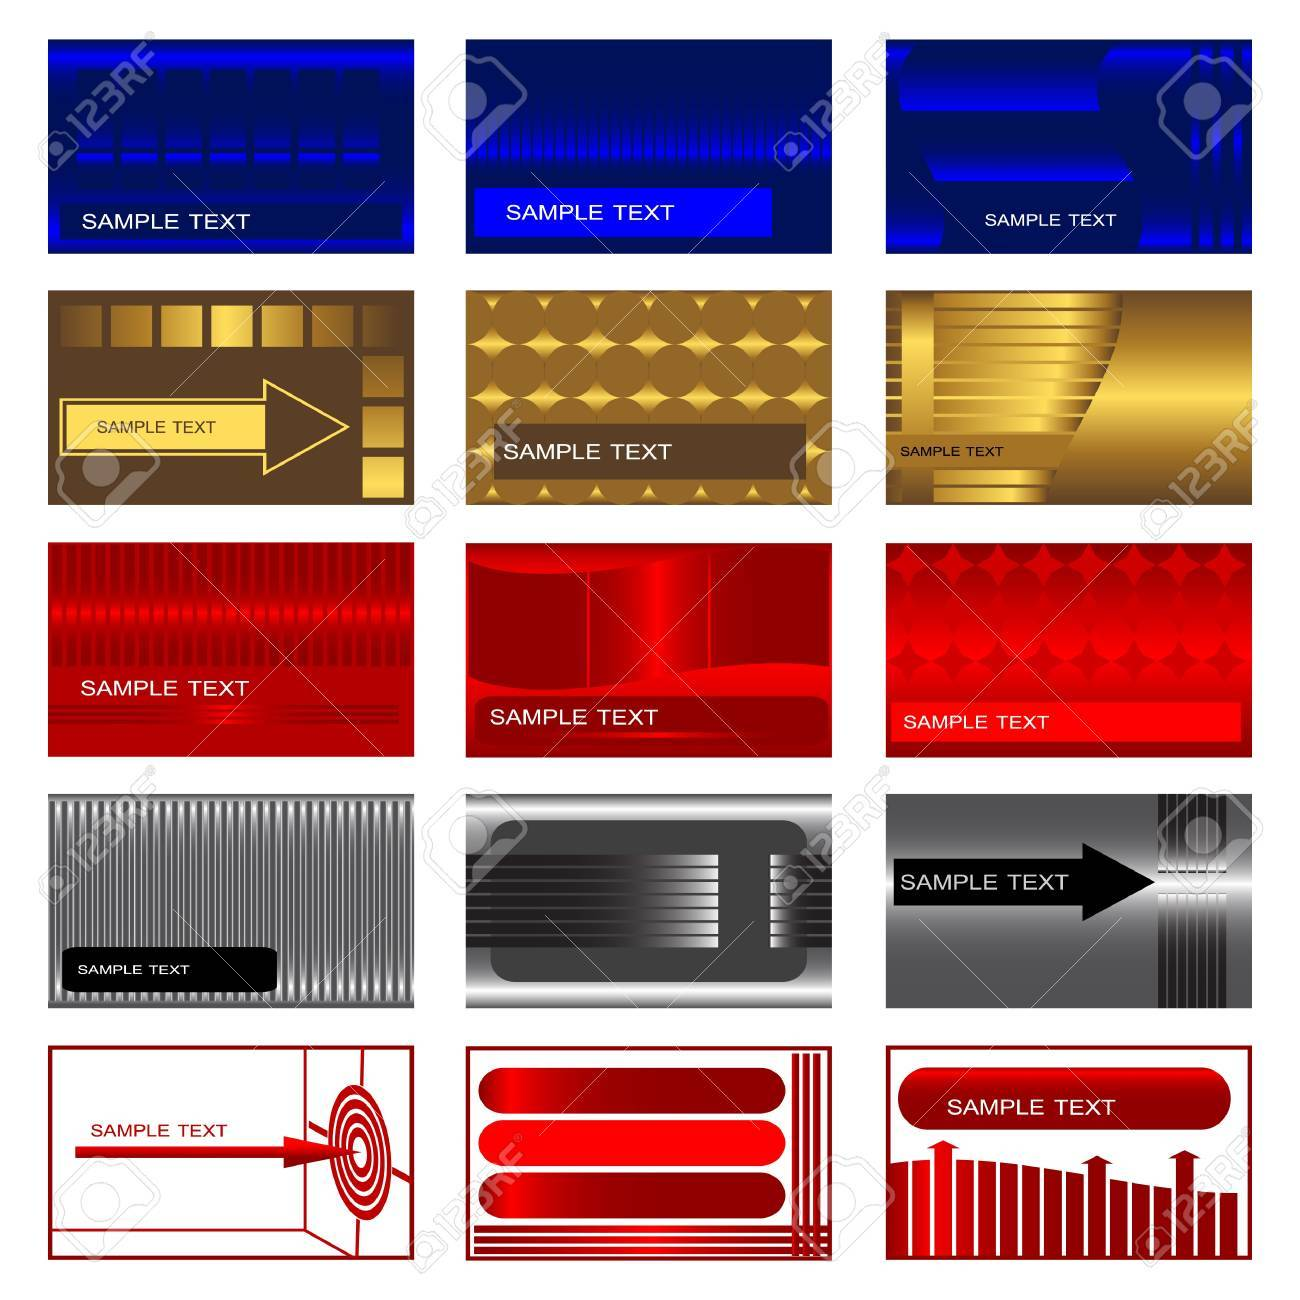 Reloadable Gift Cards For Business Image collections - Free ...